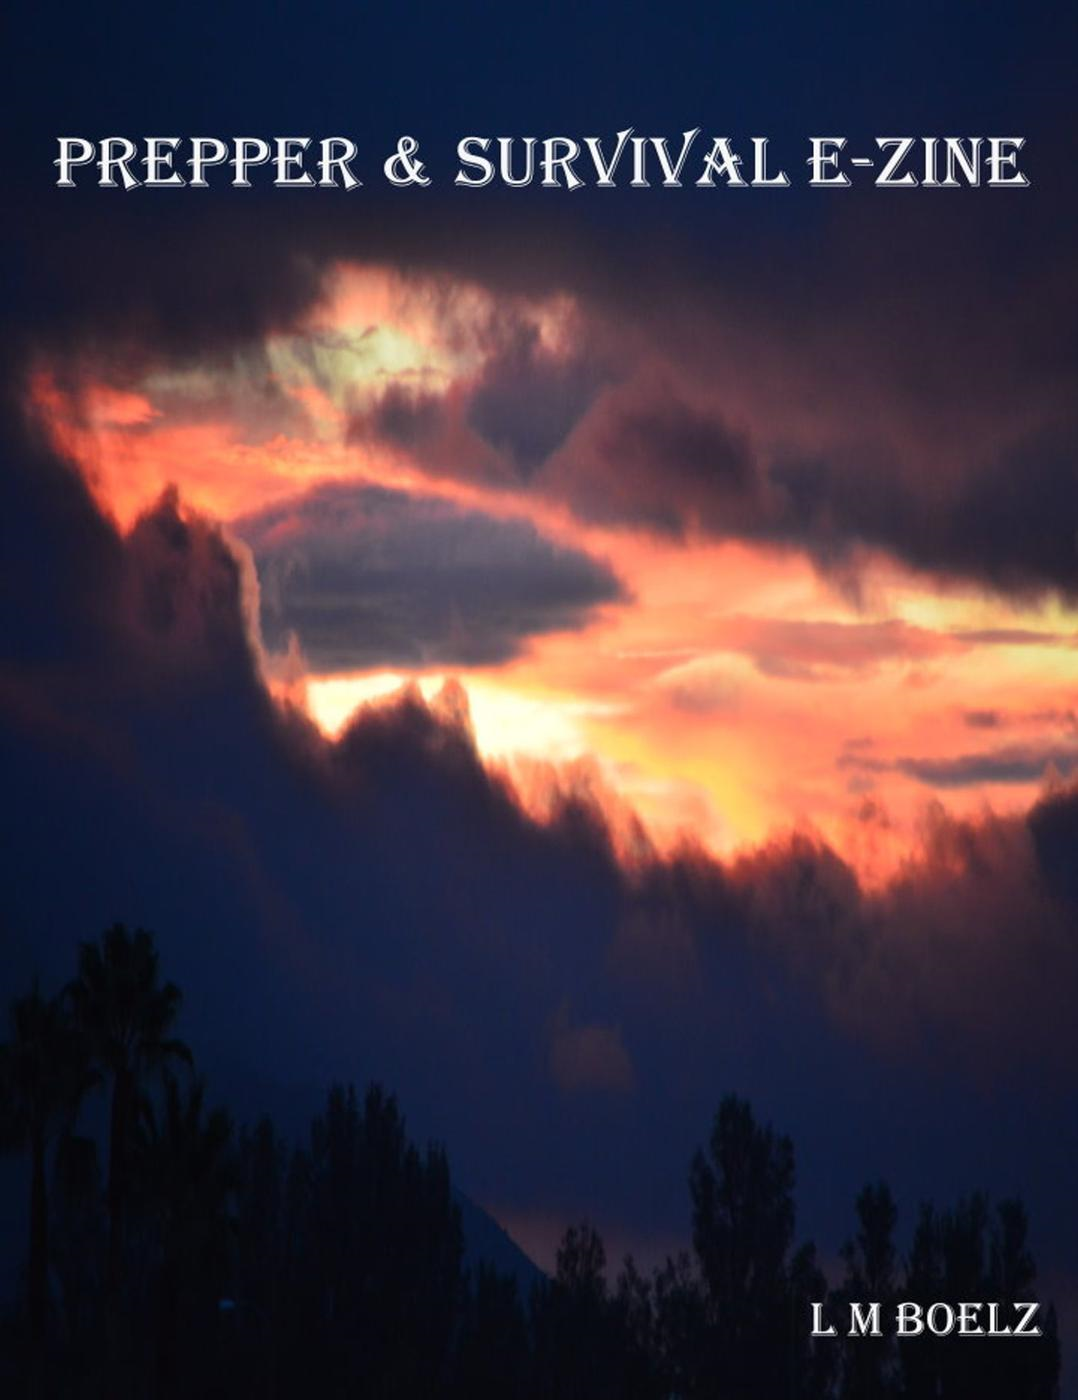 Prepper & Survival E-Zine 1 (Monthly electronic magazine, #1)